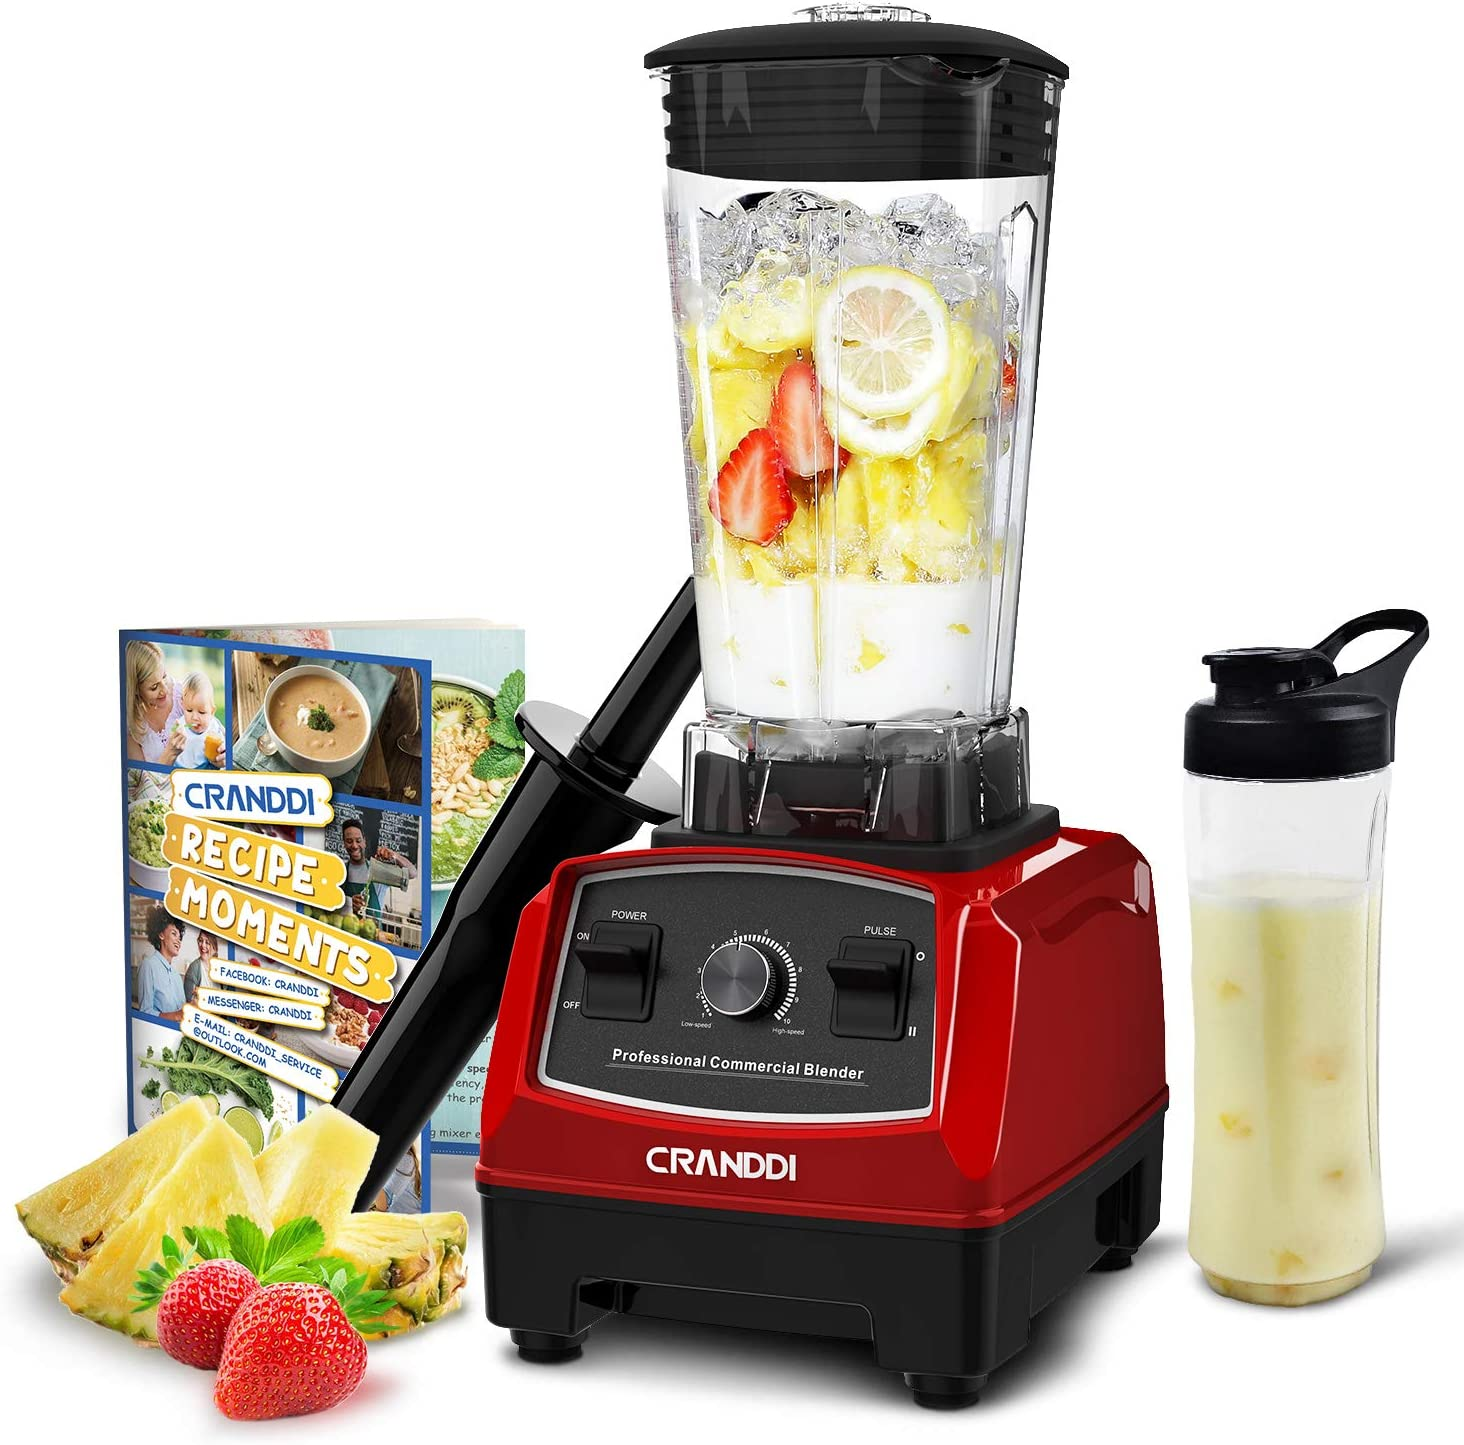 CRANDDI Countertop Blender, Professional High-Speed Smoothie Blender with 70oz Pitcher for Family Size Frozen Smoothies and Drinks, Built-in Pulse & 9-speeds Control with 1500W Base, Easy Self-Cleaning, KND-YL-010-R New